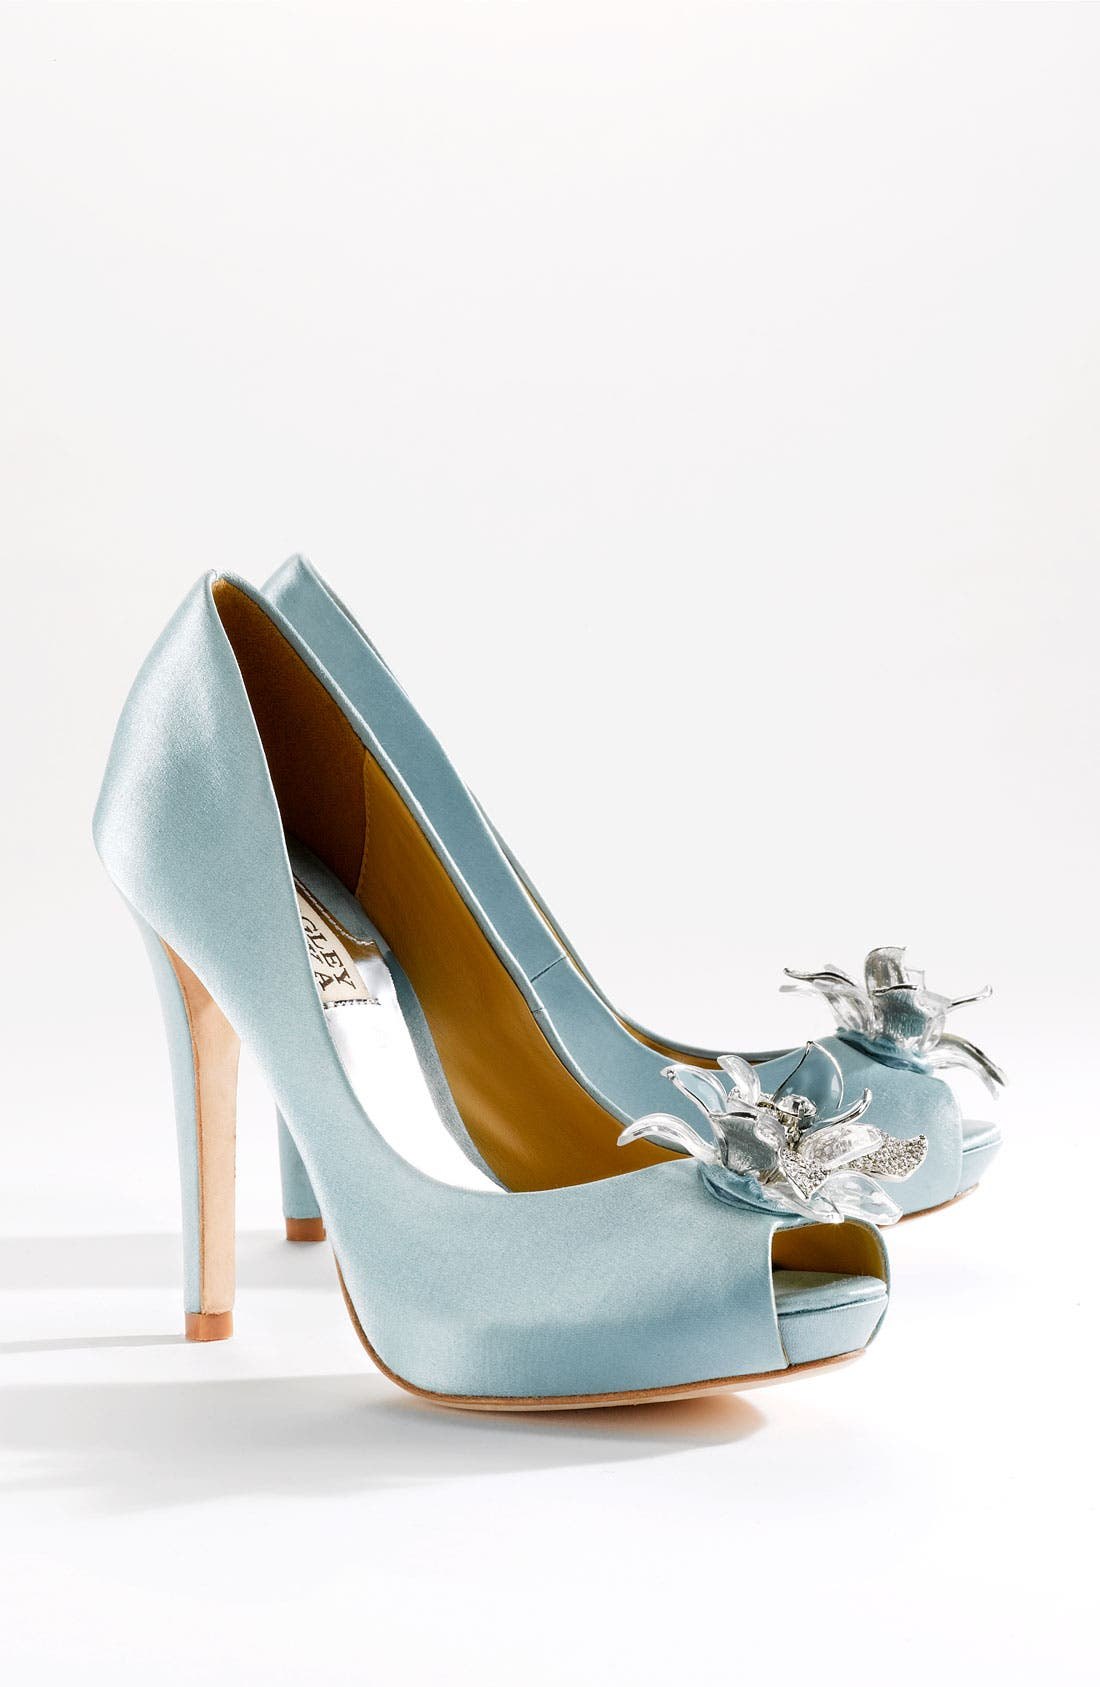 BADGLEY MISCHKA COLLECTION, Badgley Mischka 'Cleone' Pump, Alternate thumbnail 5, color, 142